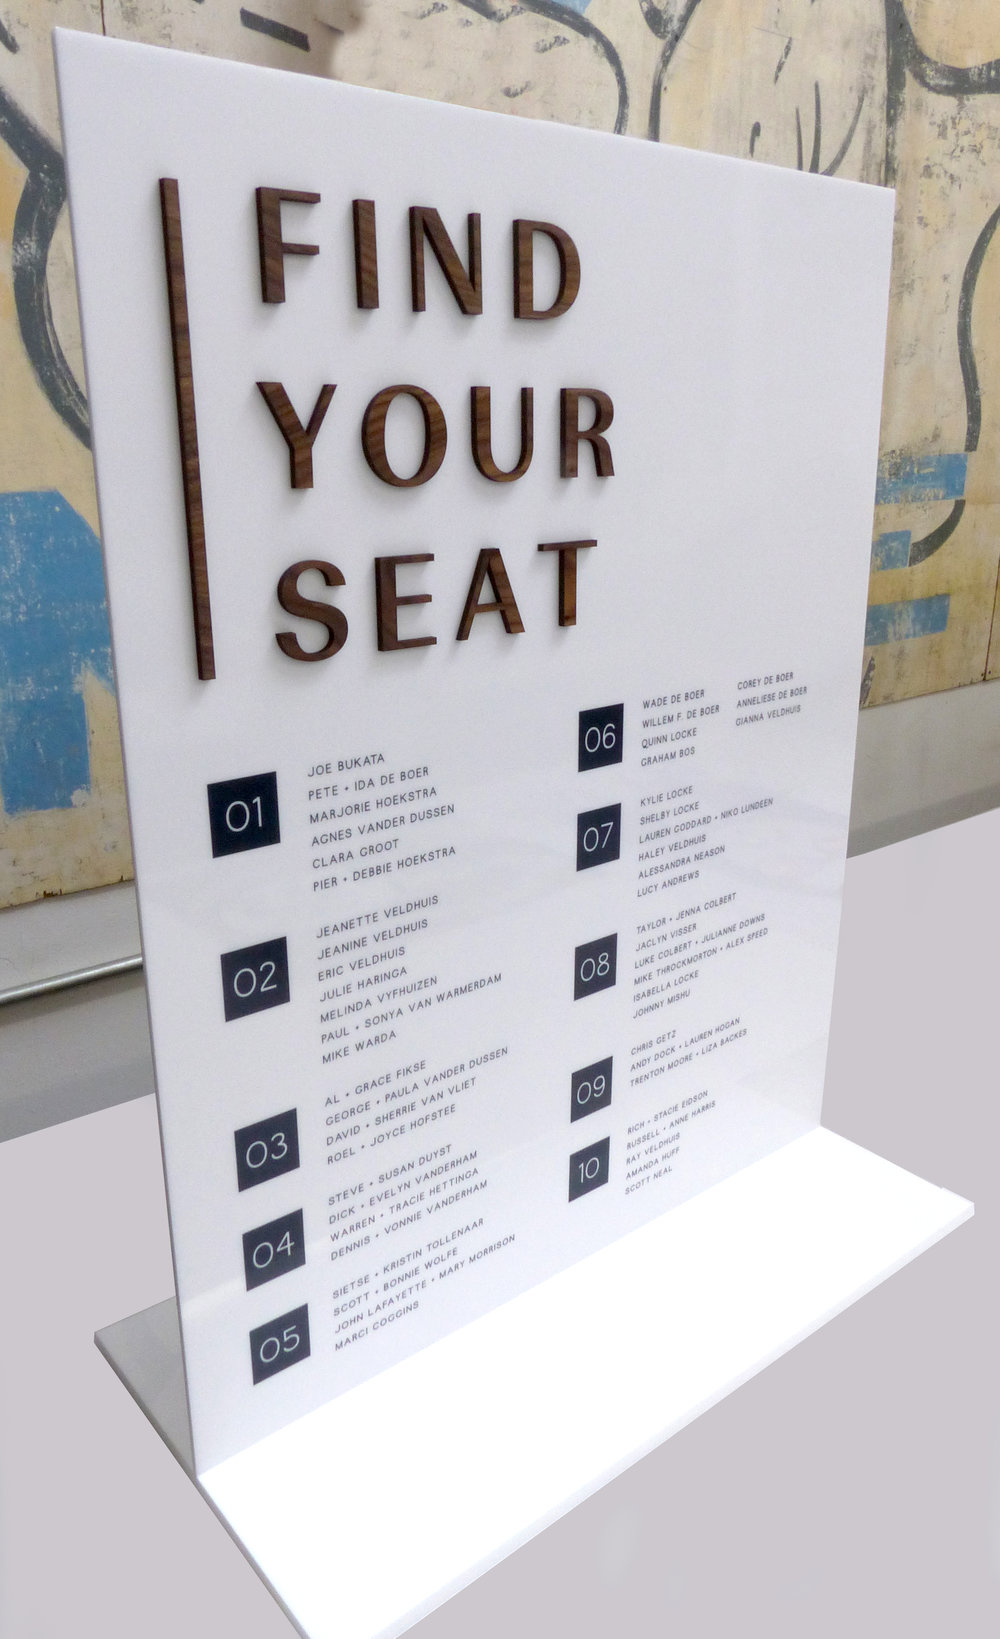 Find Your Seat 02.jpg